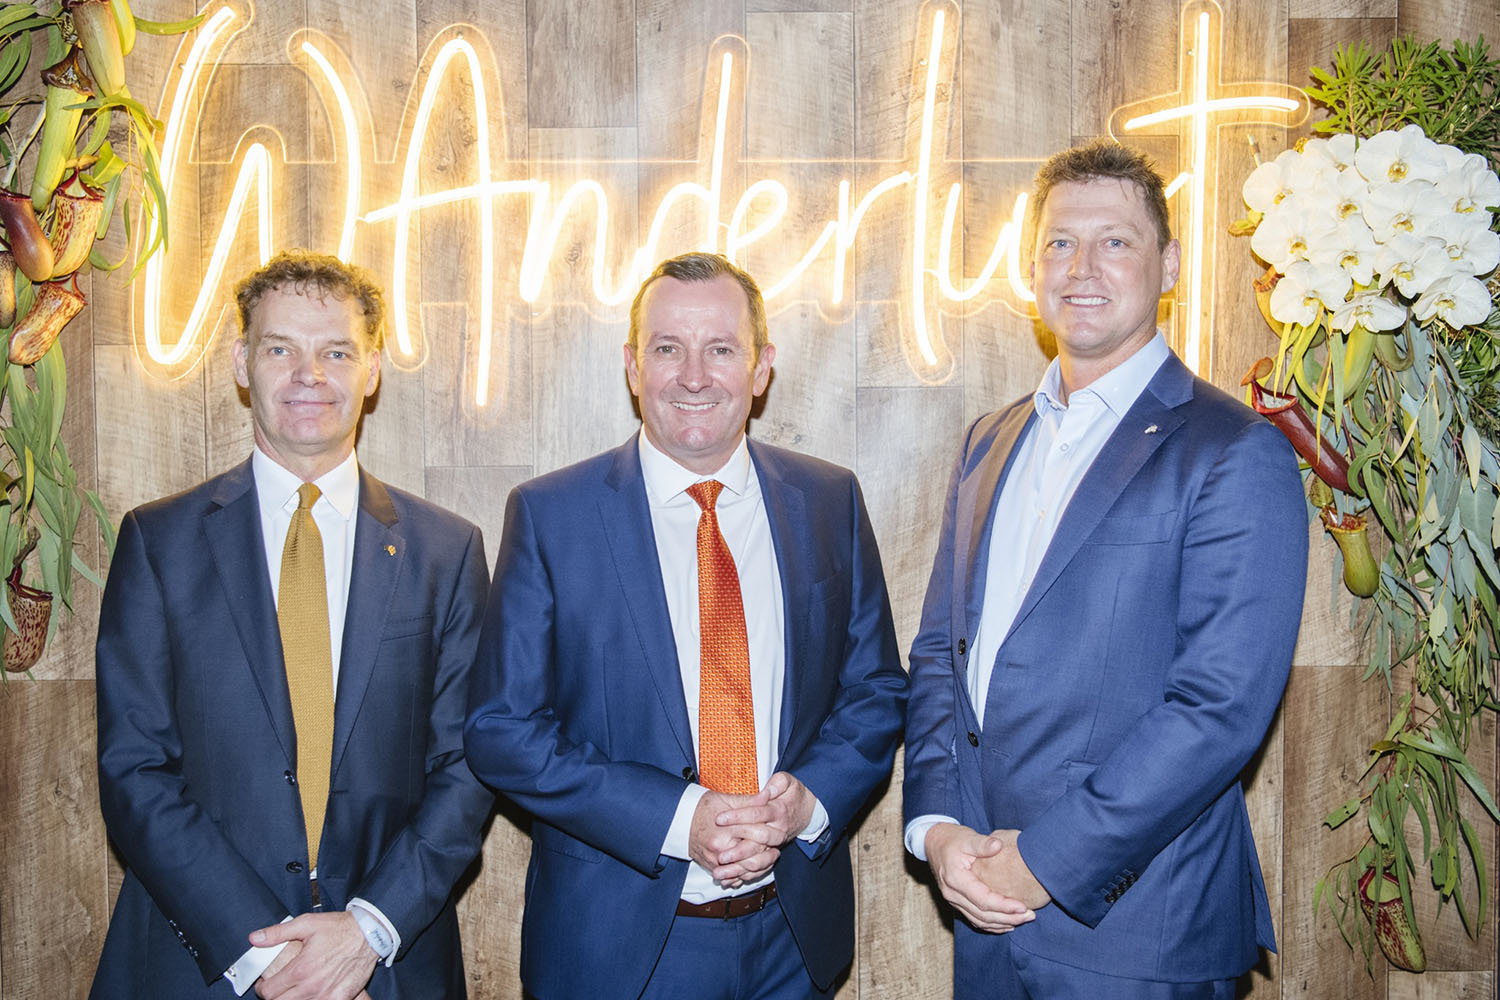 GPJ Australia and Tourism WA deliver WAnderlust: A Journey of Extraordinary Sensations